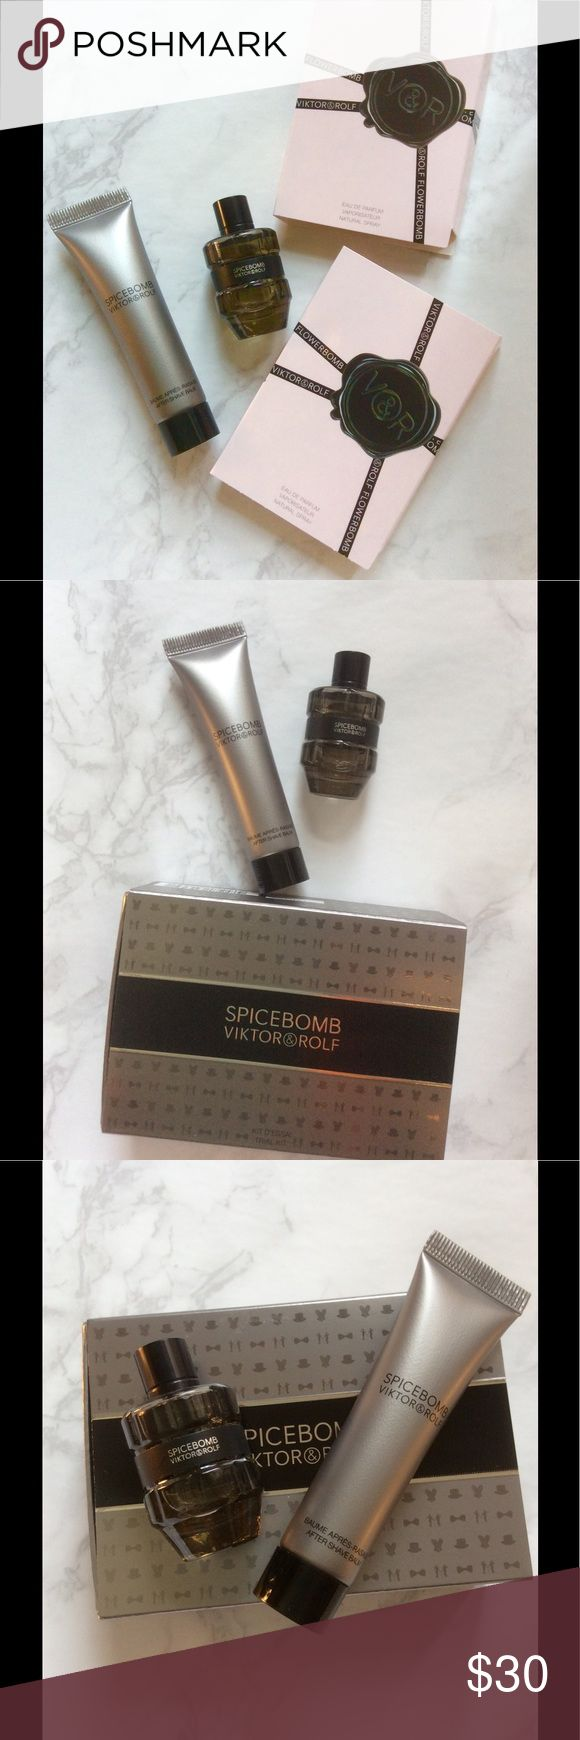 Viktor & Rolf Mini Spicebomb+Aftershave Balm+bonus New. Unused. No trades. Everything listed is authentic. Price firm. Perfect for travel. Perfect to try out or to add to your miniature collection. Please note size before purchasing. You will receive the following:  Viktor & Rolf Mini Spicebomb Eau de Toilette Splash 0.24 oz. Viktor & Rolf Spicebomb Aftershave Balm 0.5 oz.   Bonus: Viktor & Rolf Flowerbomb Eau de Parfum 0.04 oz. x 2  Selling as a set. Viktor & Rolf Makeup